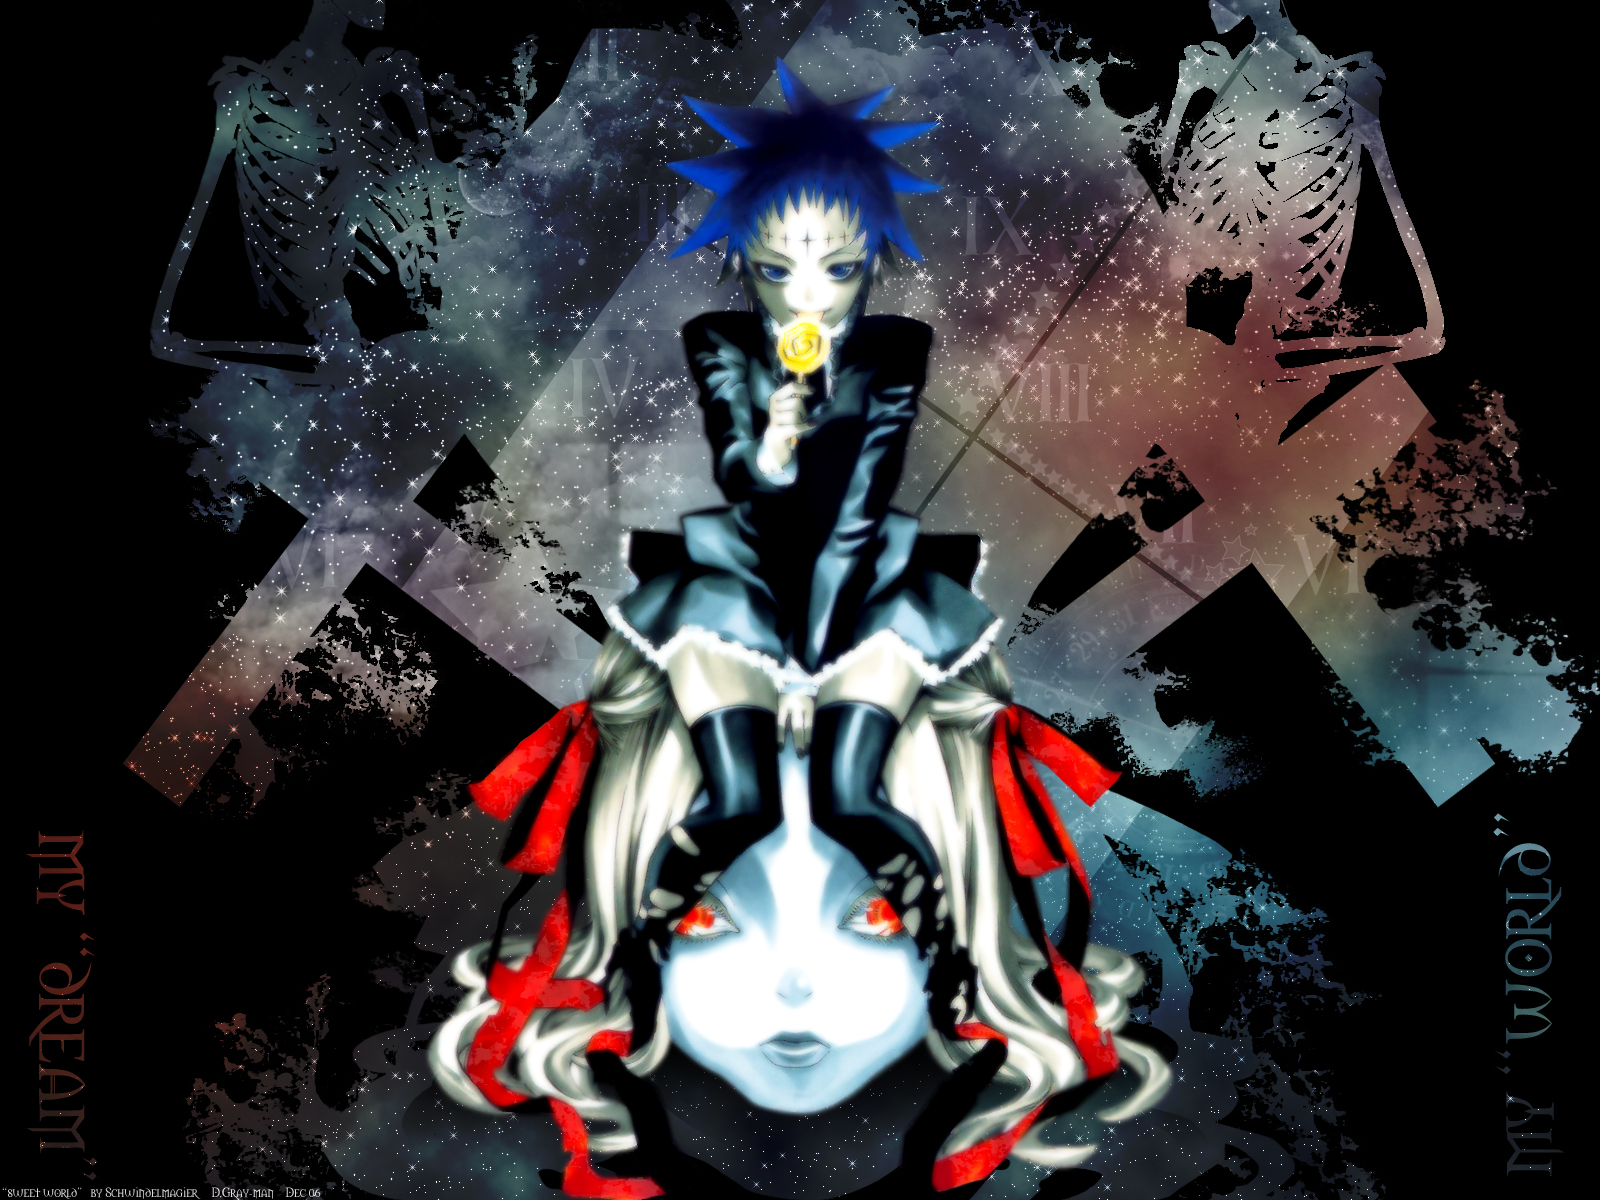 D gray man d gray man wallpaper 25484483 fanpop - D gray man images ...